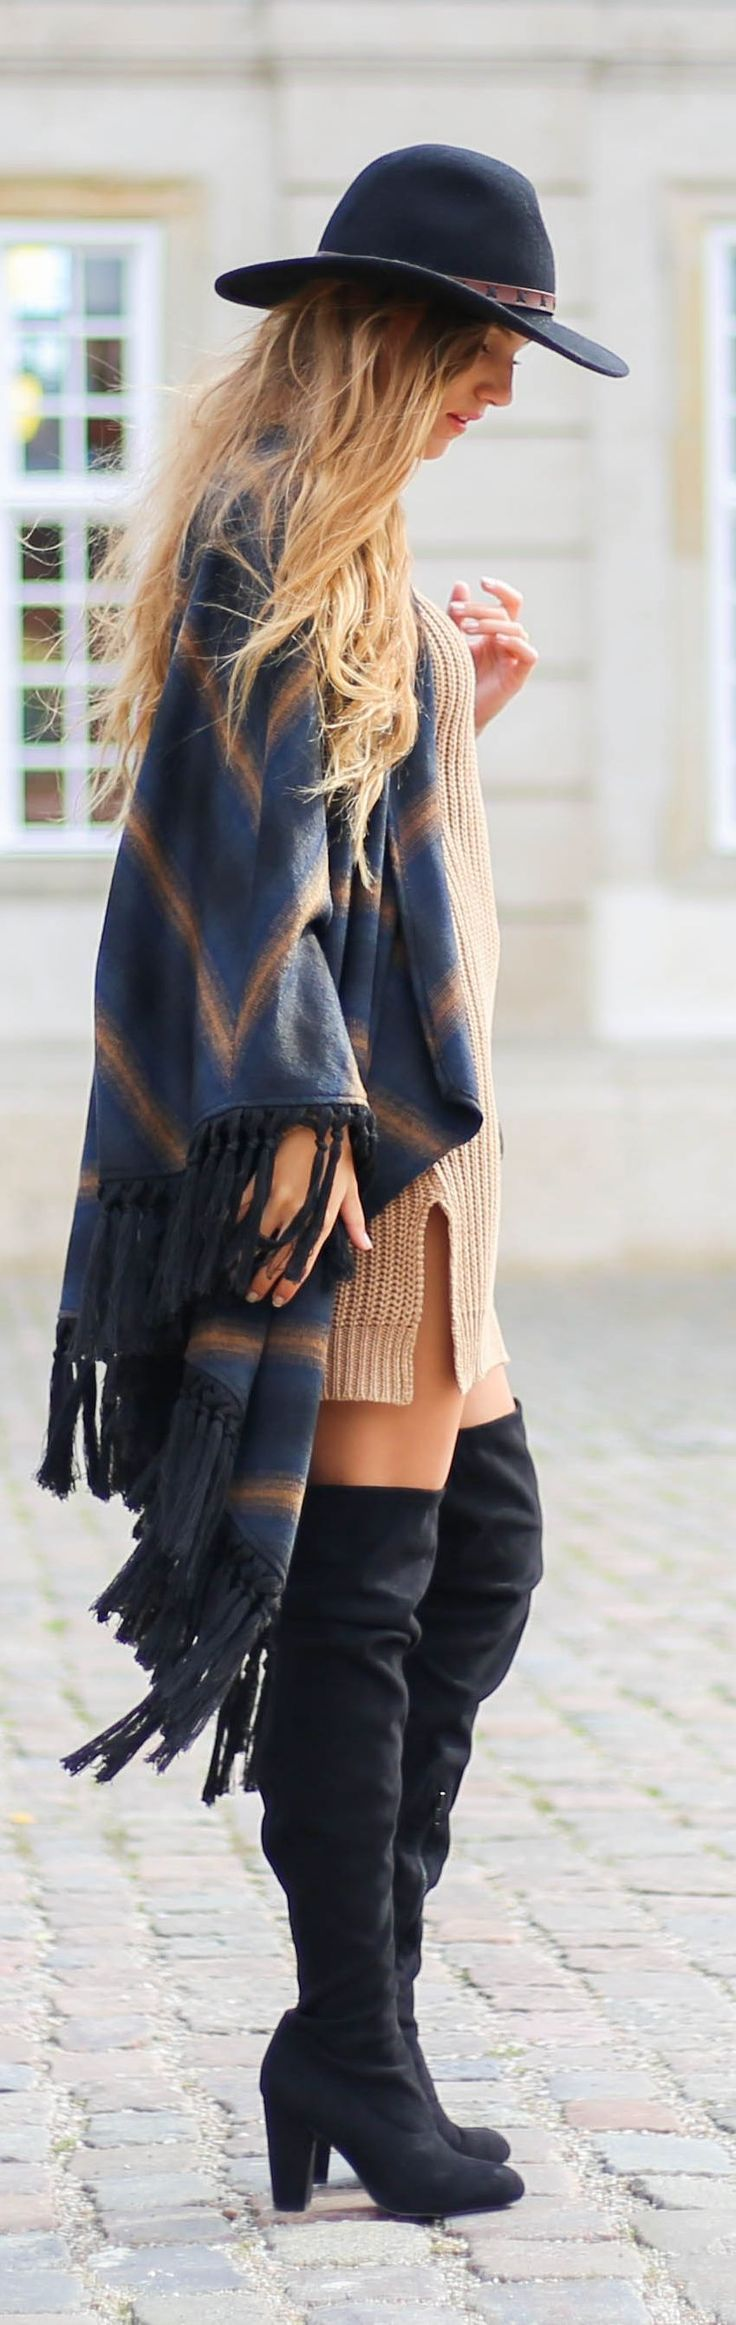 104  Winter Outfit Ideas You Must Copy Right Now #fall #outfit #winter #style Visit to see full collection